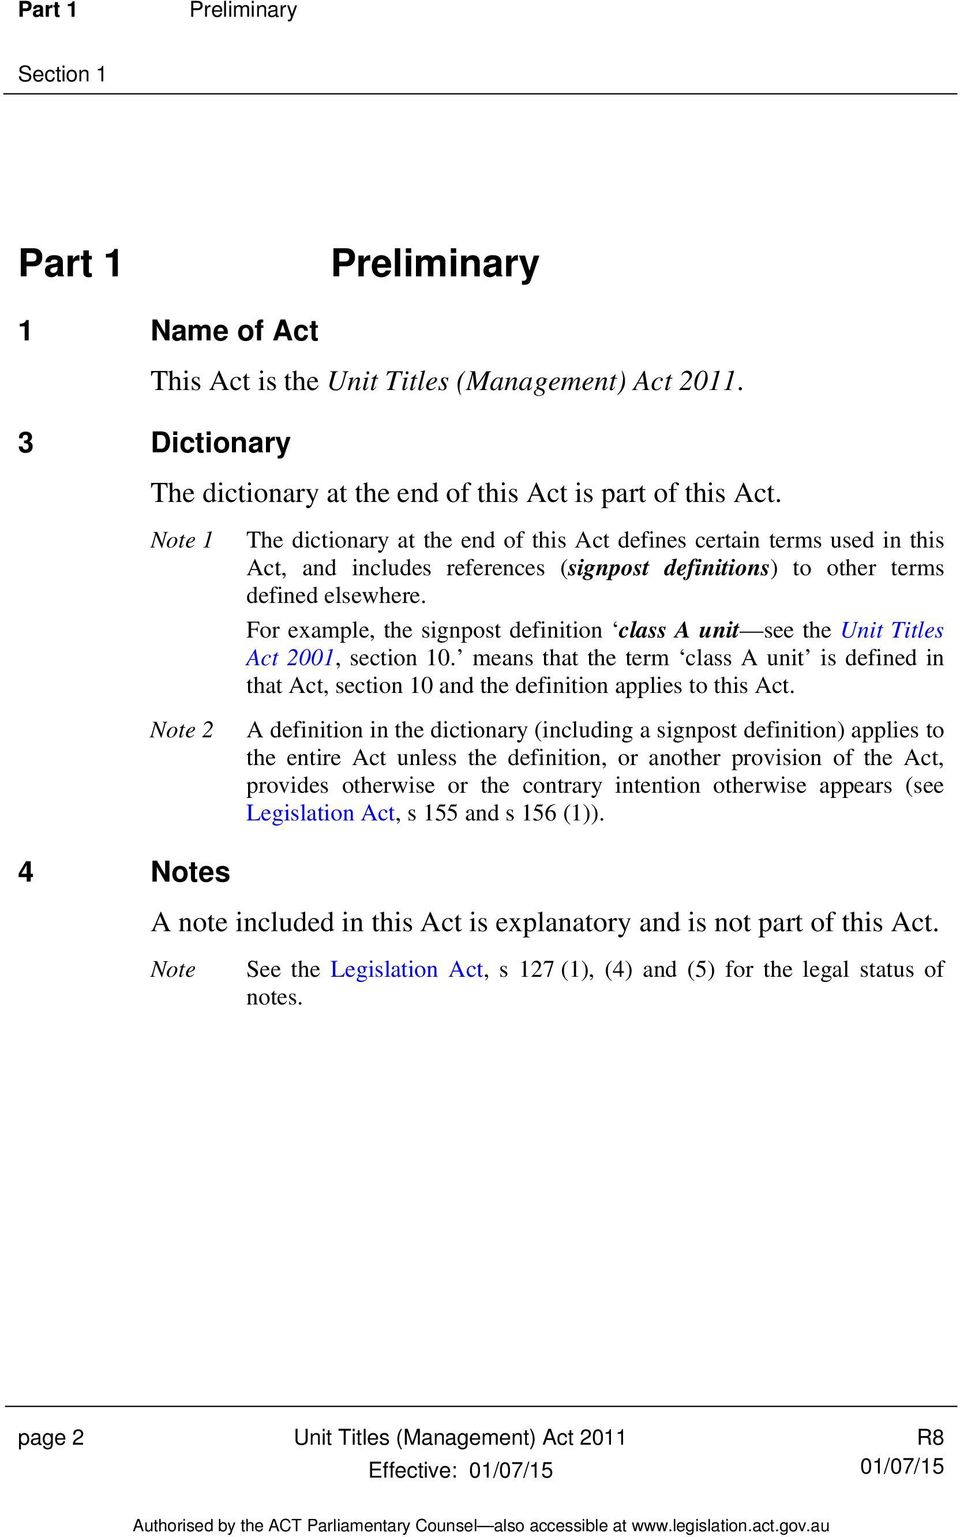 For example, the signpost definition class A unit see the Unit Titles Act 2001, section 10. means that the term class A unit is defined in that Act, section 10 and the definition applies to this Act.